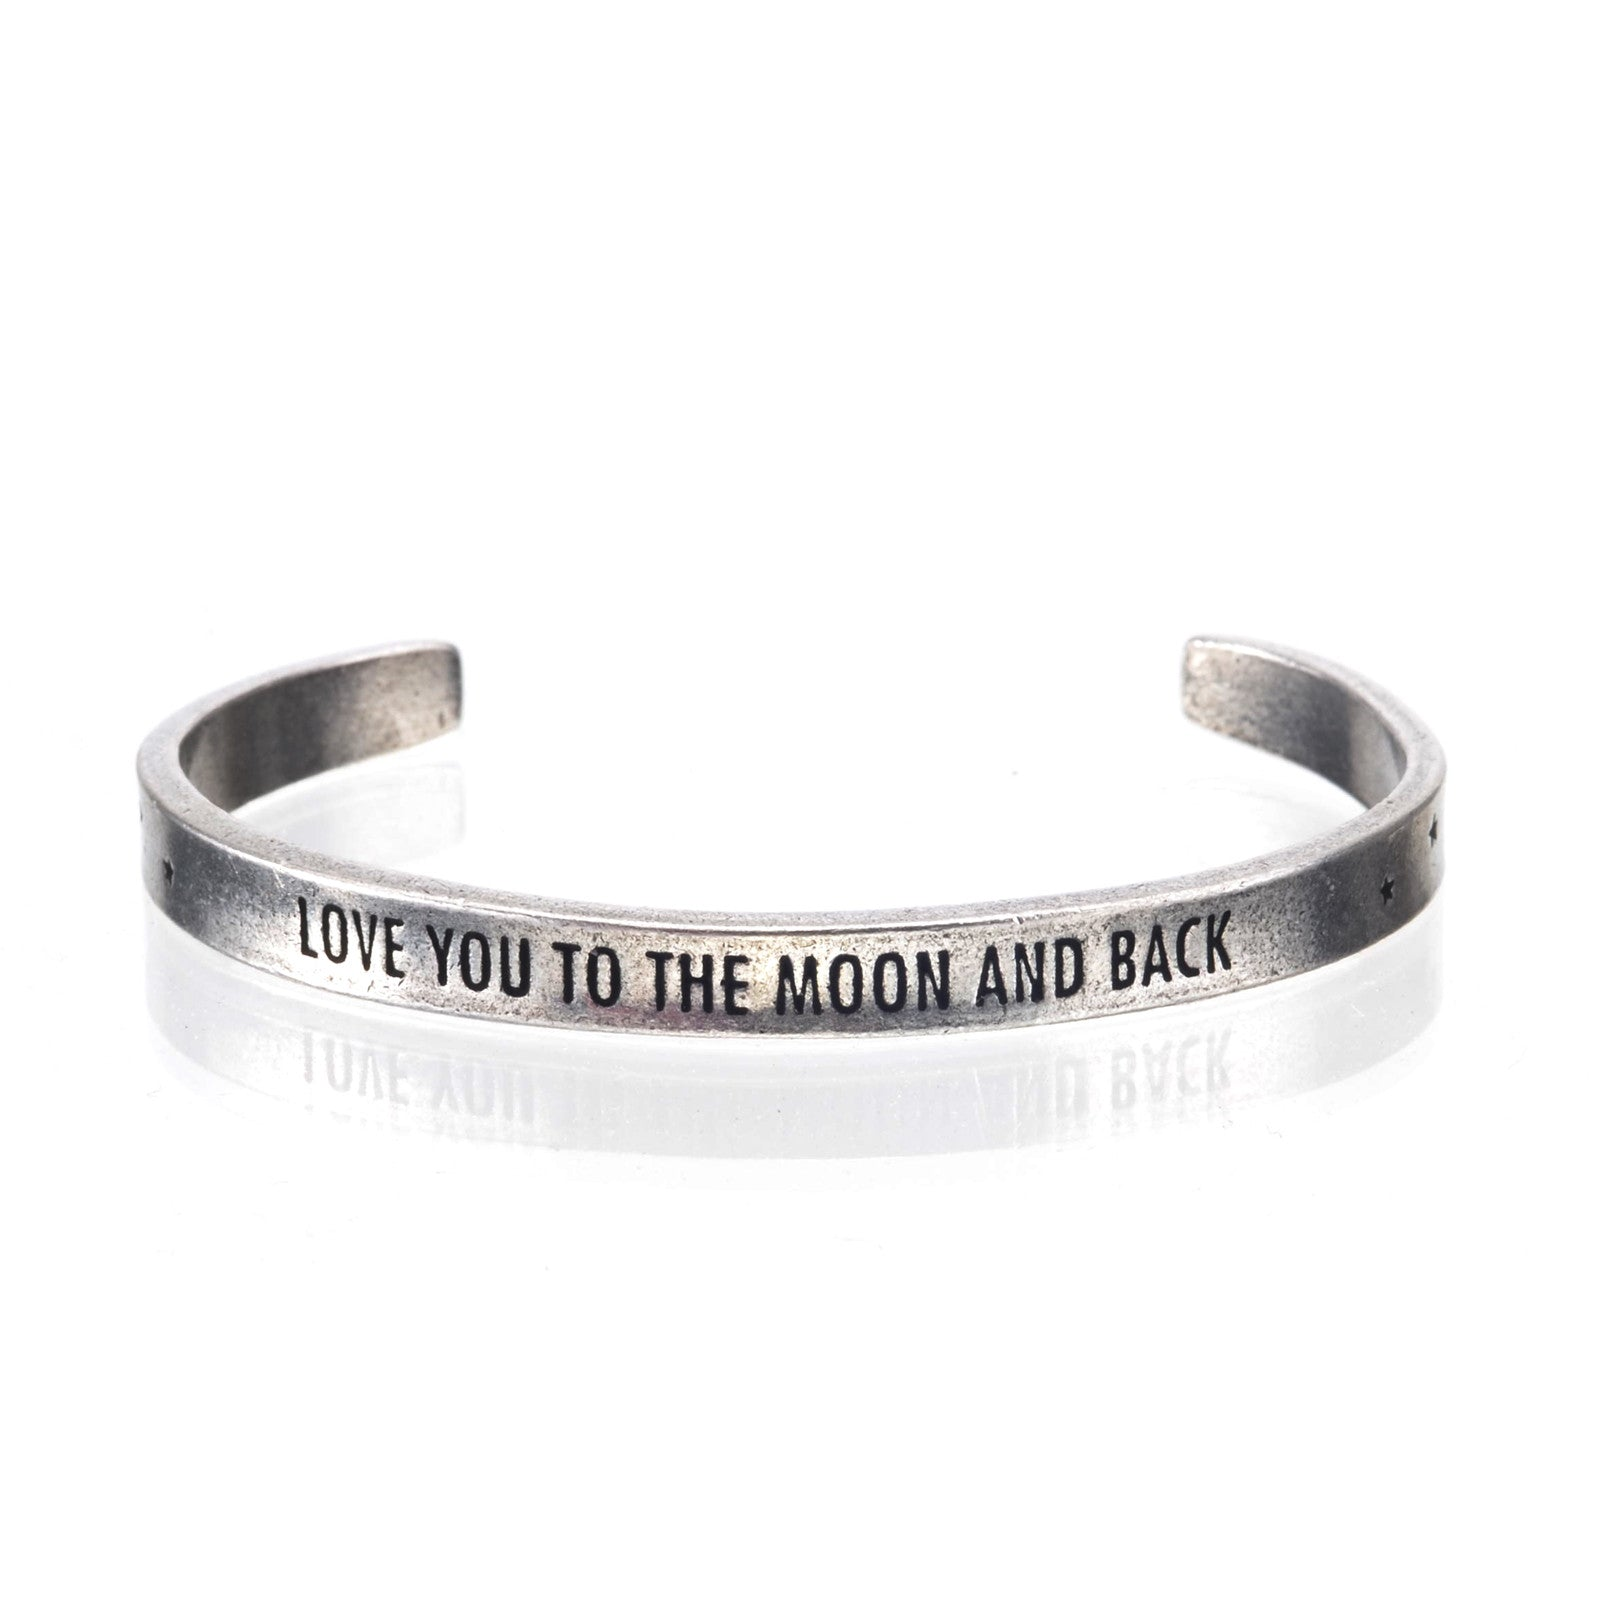 Love You To The Moon And Back Quotable Cuff Bracelet - Whitney Howard Designs